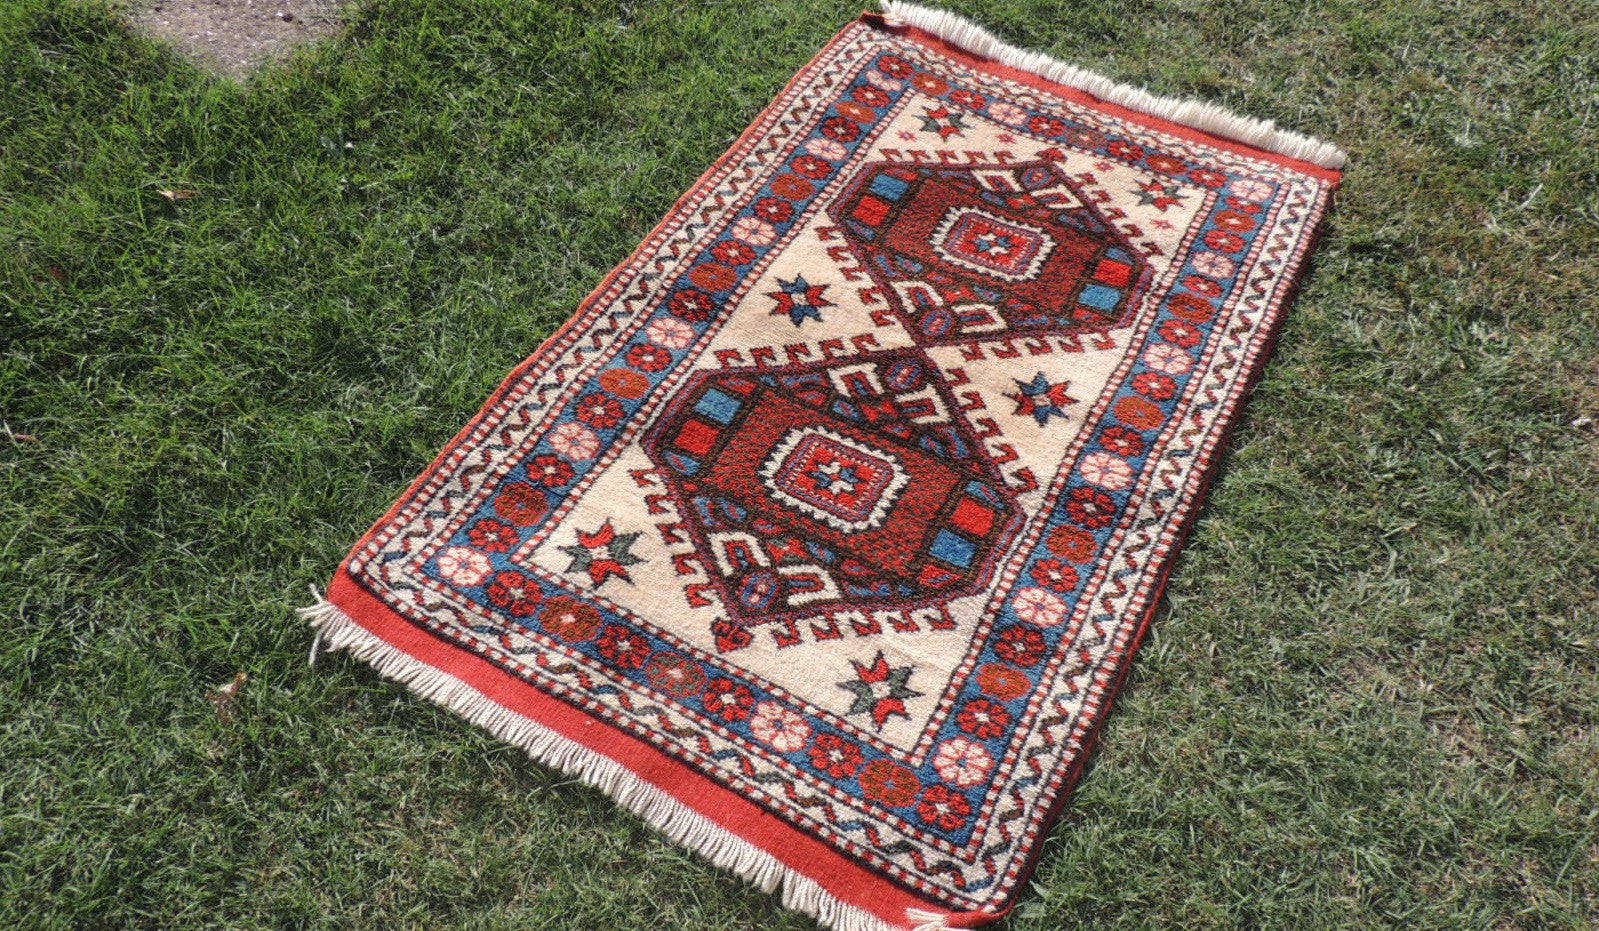 Geometric Wool Area Rug from Western Turkey - bosphorusrugs  - 1